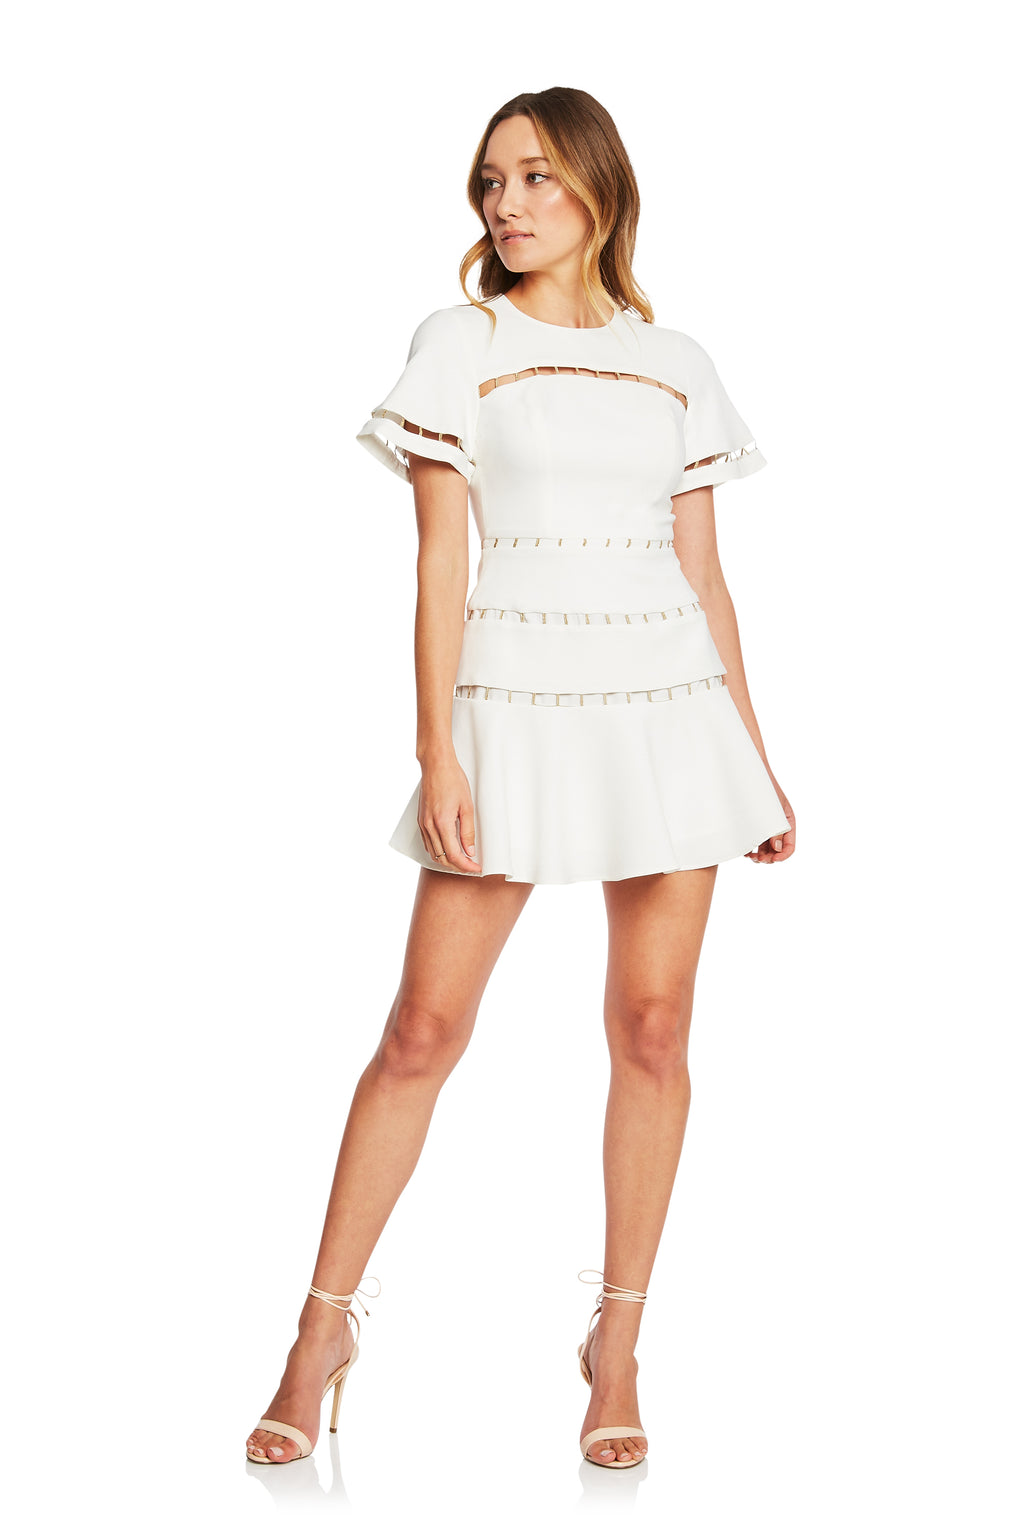 Finders Keepers Talisman Mini Dress